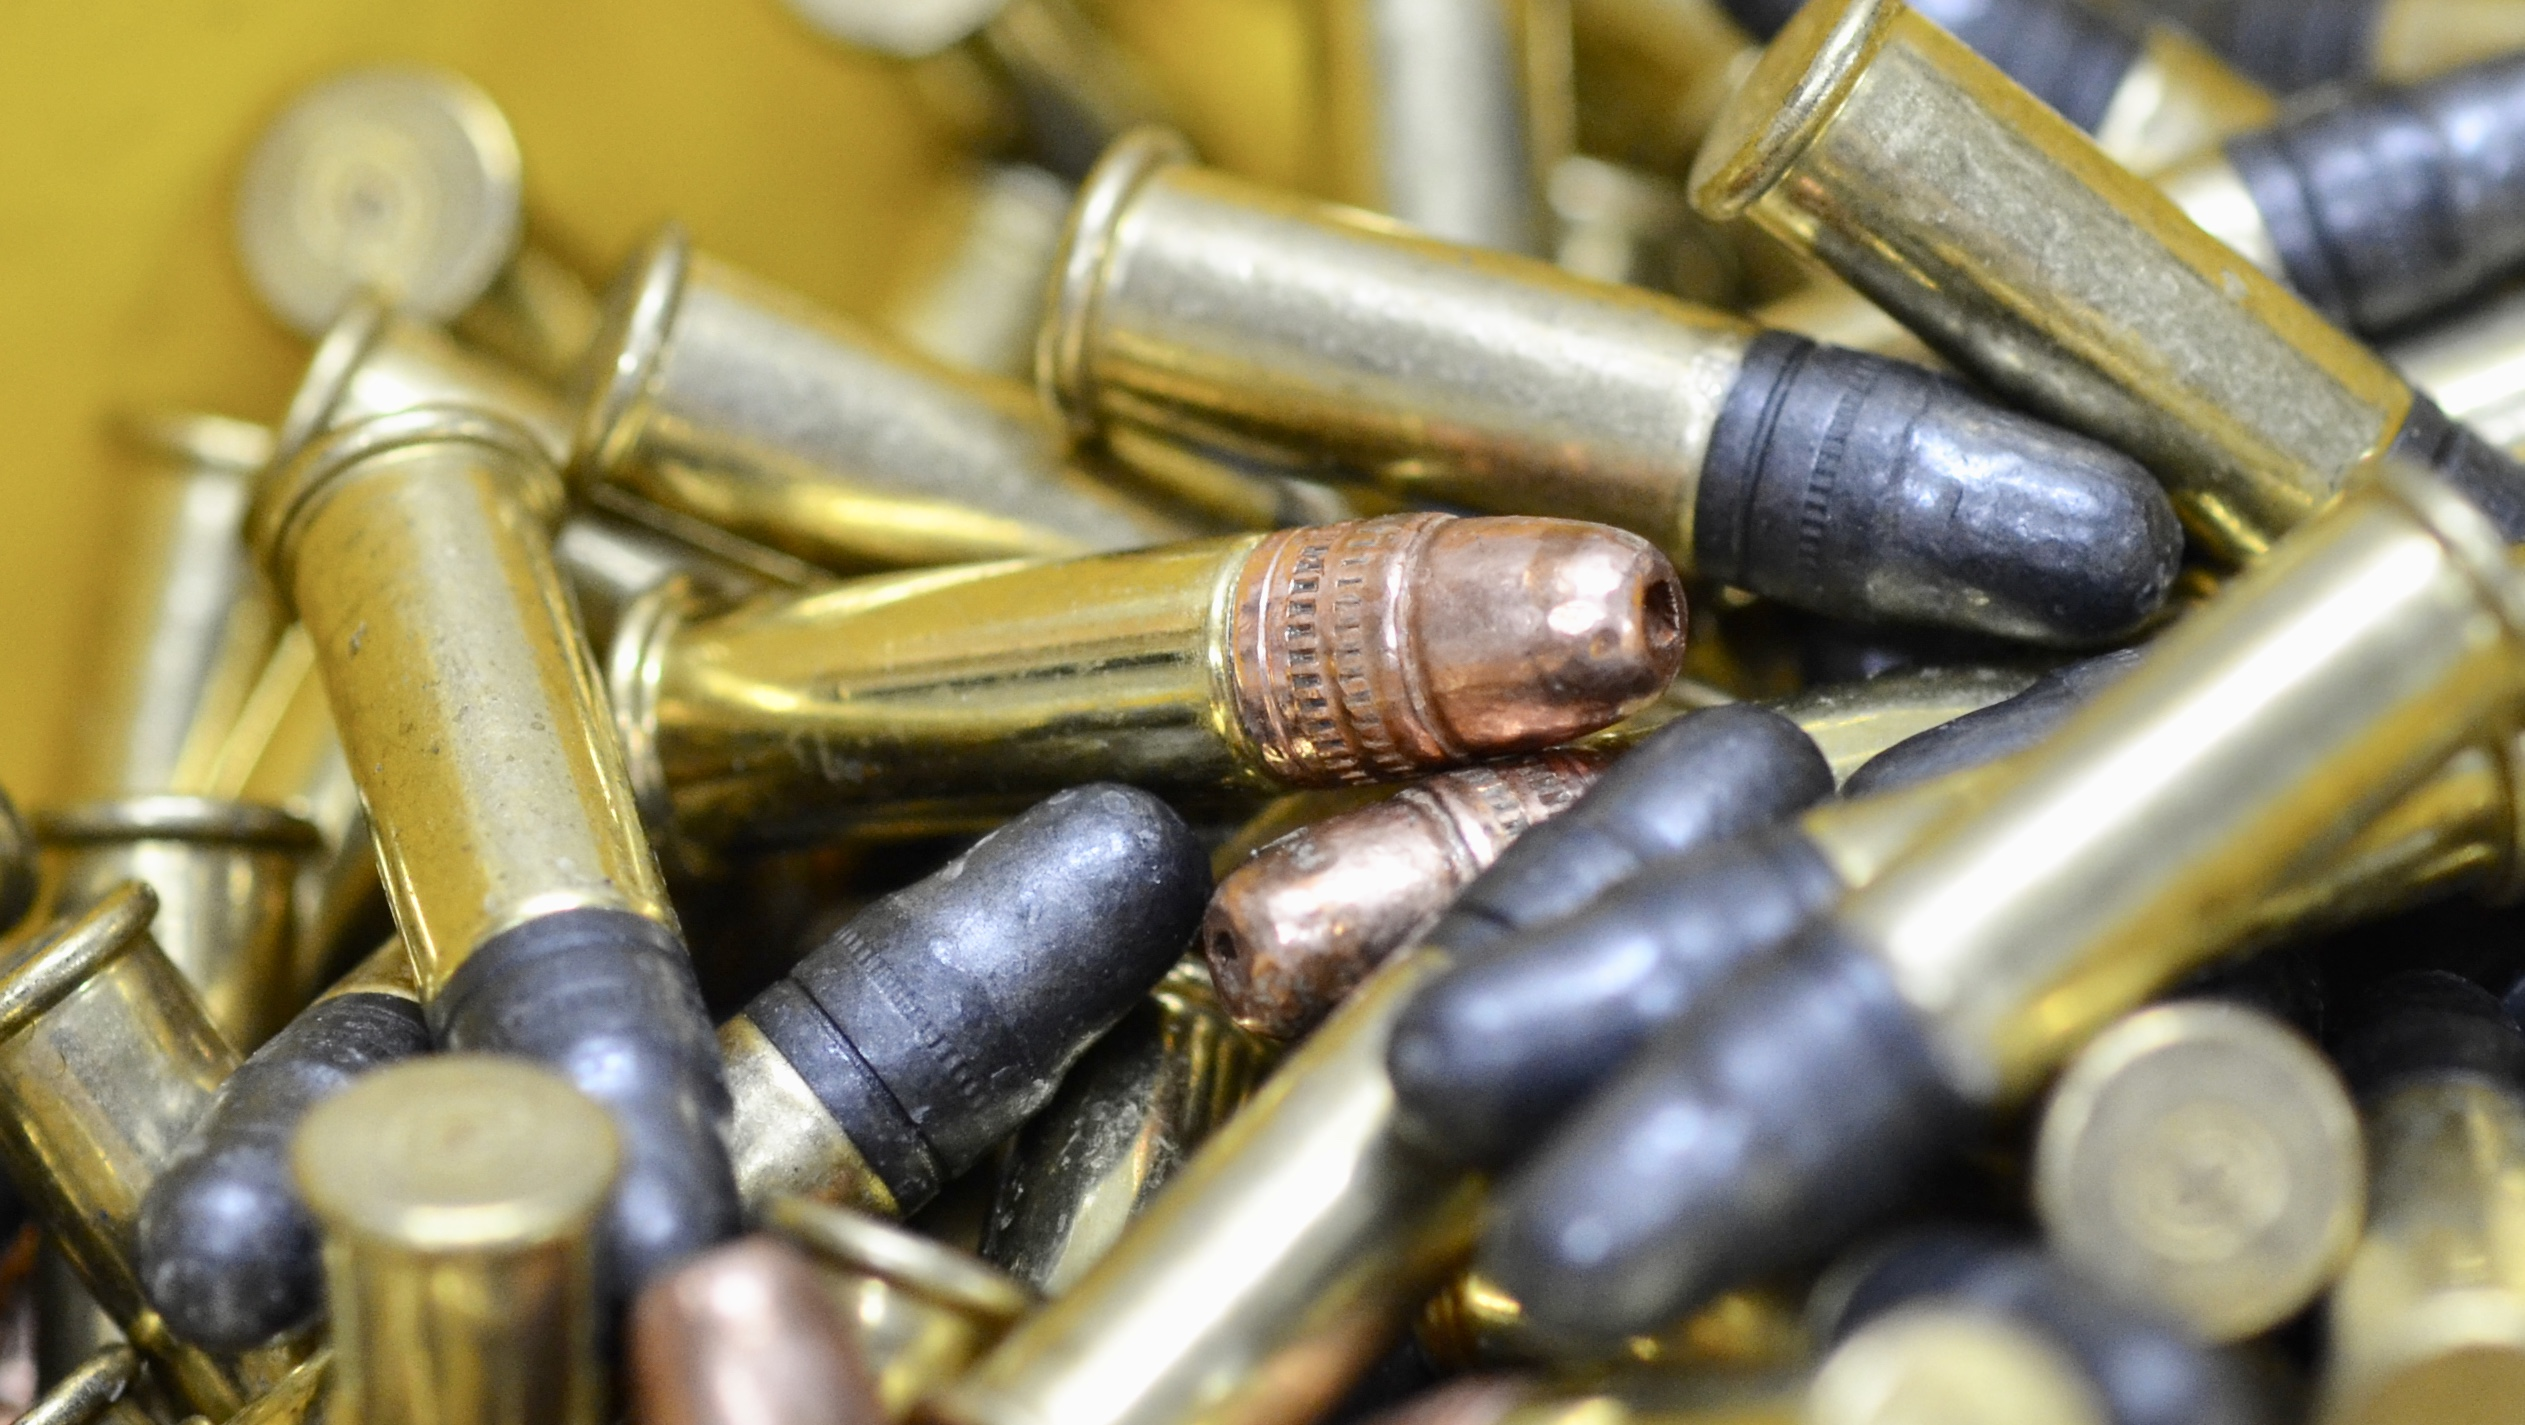 Lead or Copper for your  22LR ? - The Loadout Room